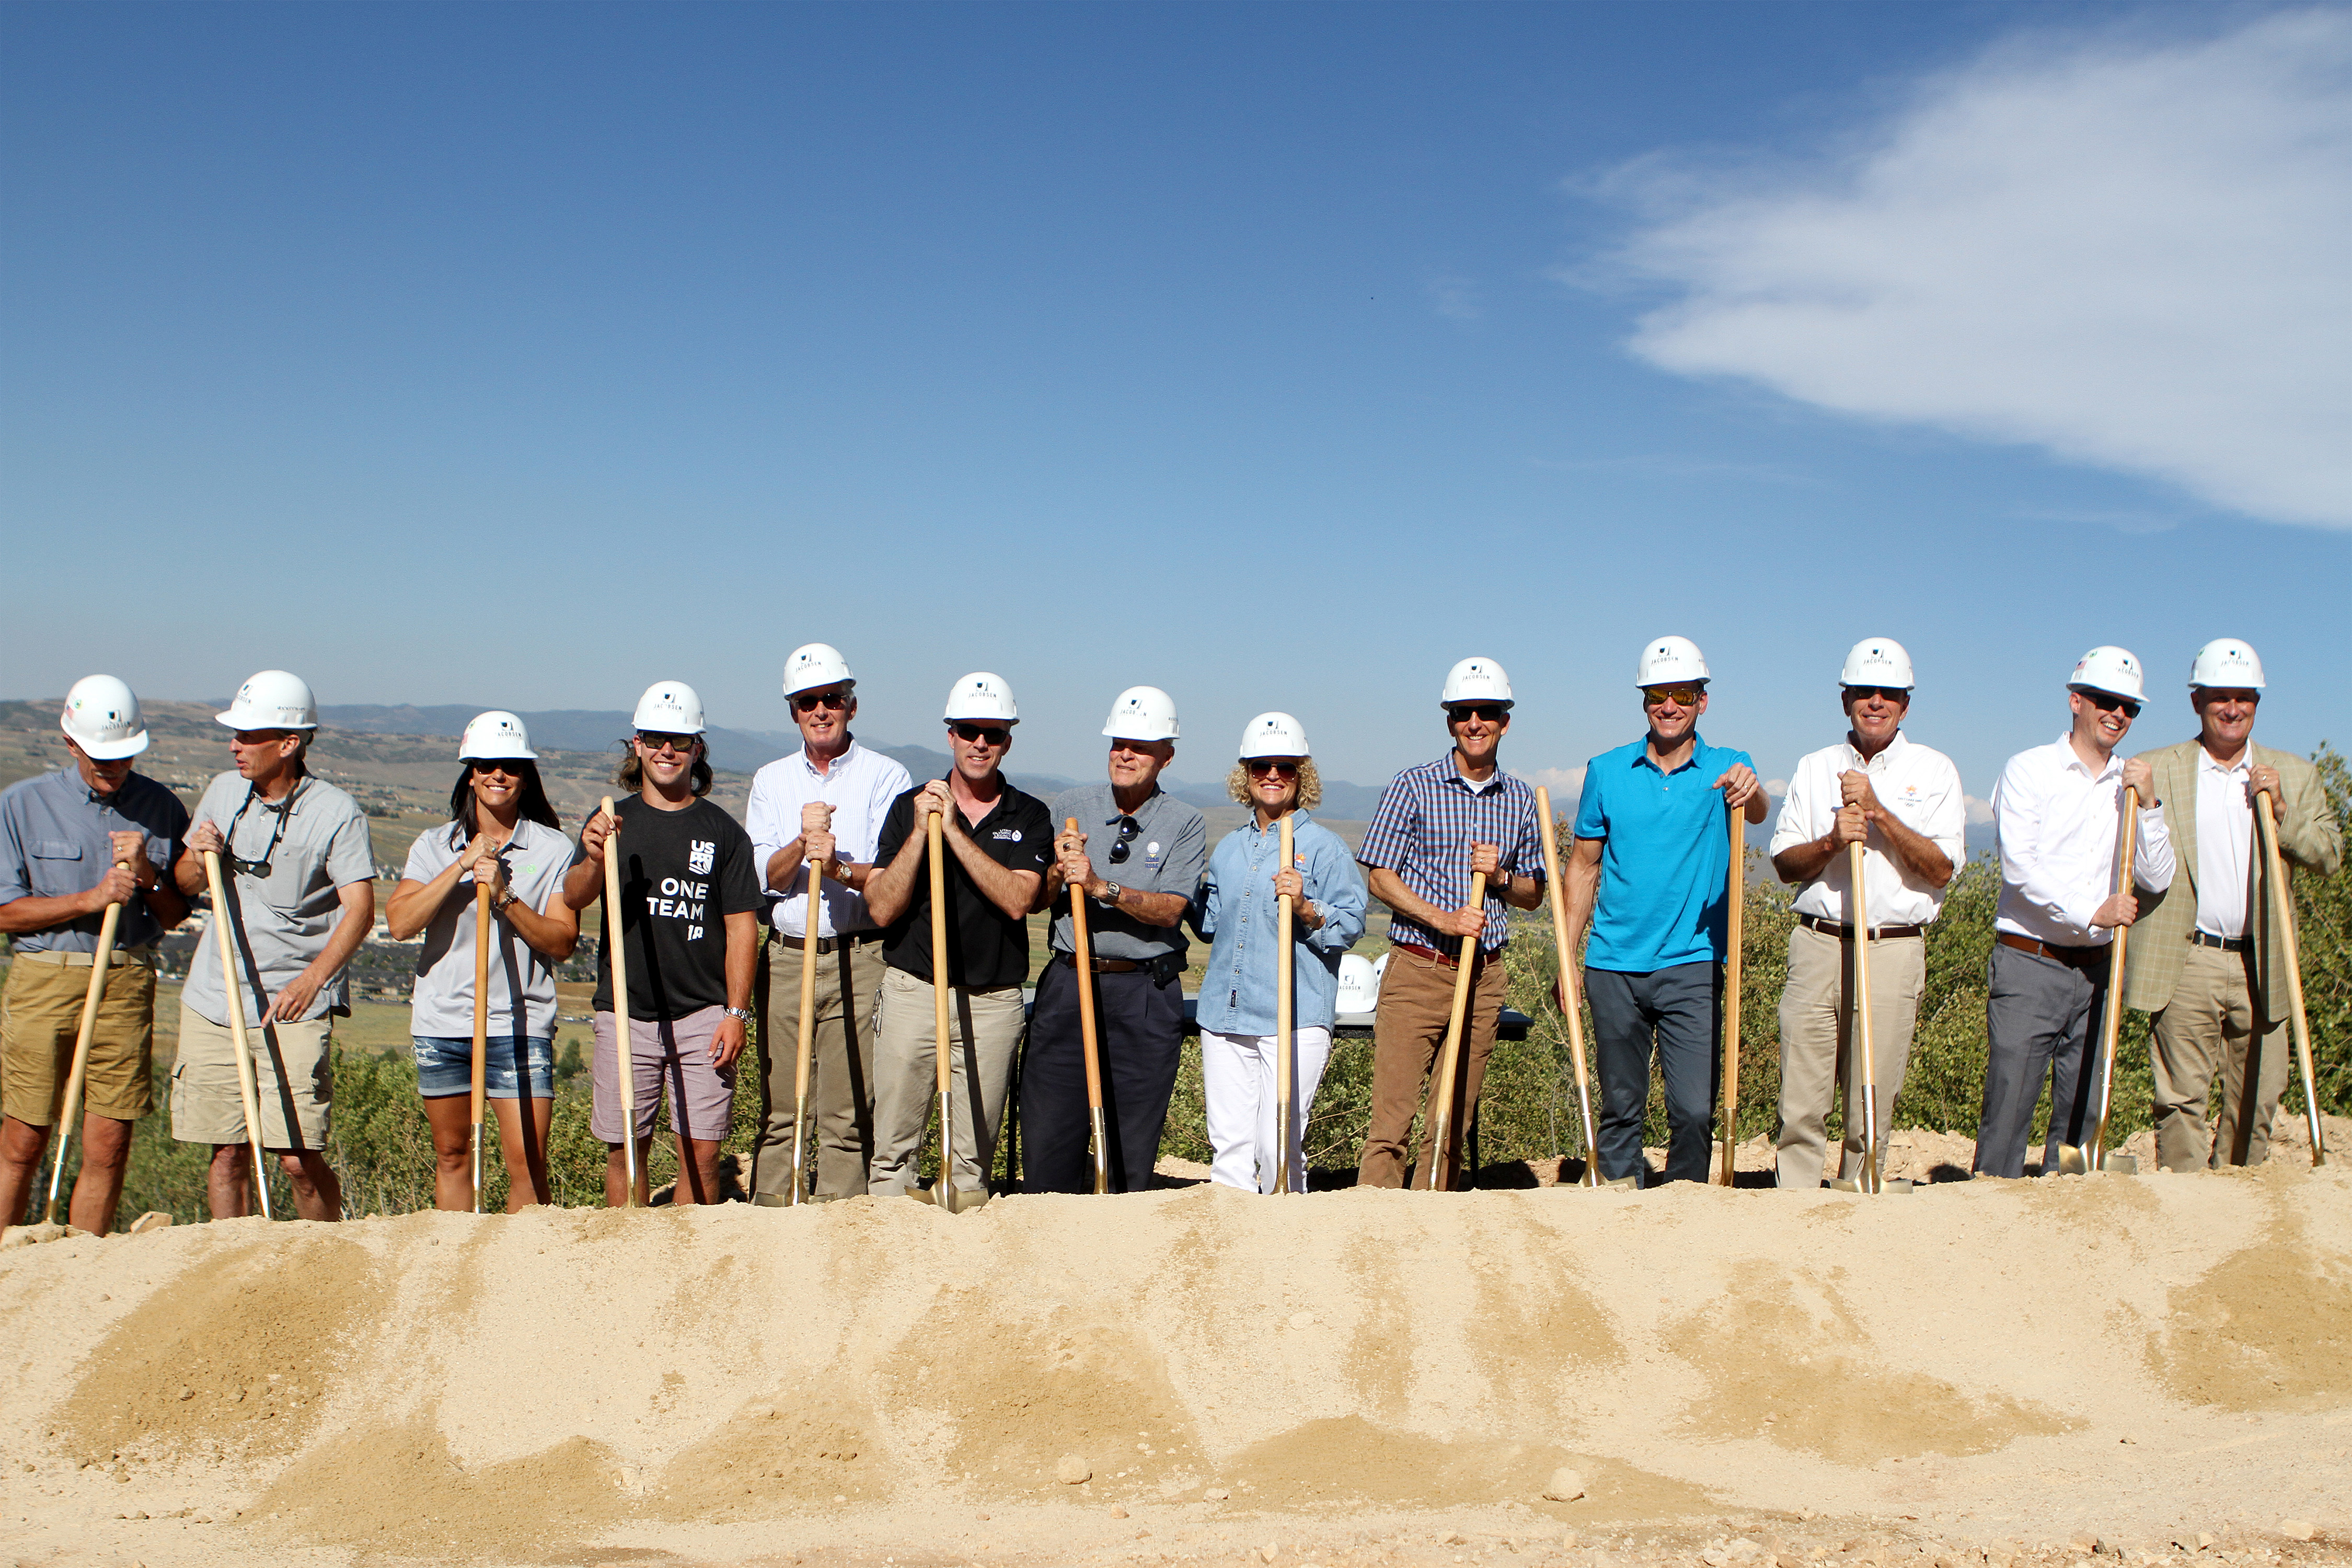 Groundingbreaking ceremony at the Utah Olympic Park